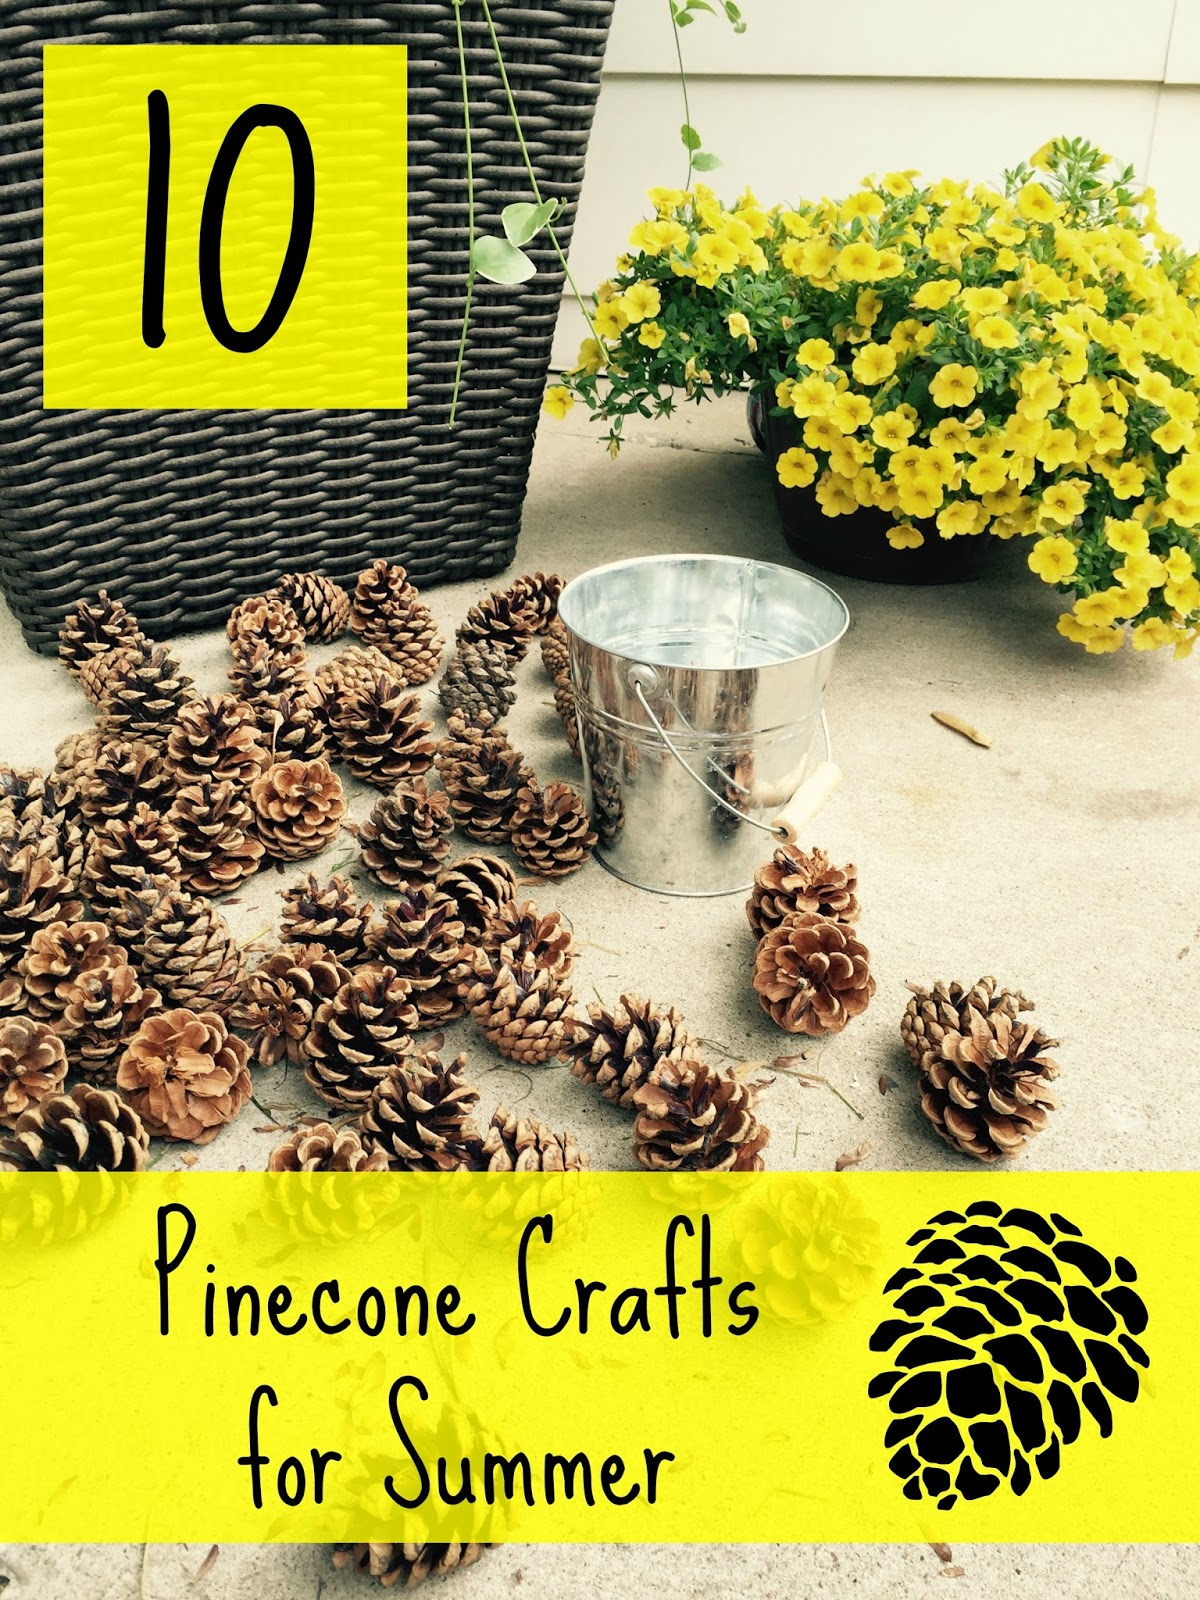 Sunshine By Channon 10 Pinecone Crafts For Summer